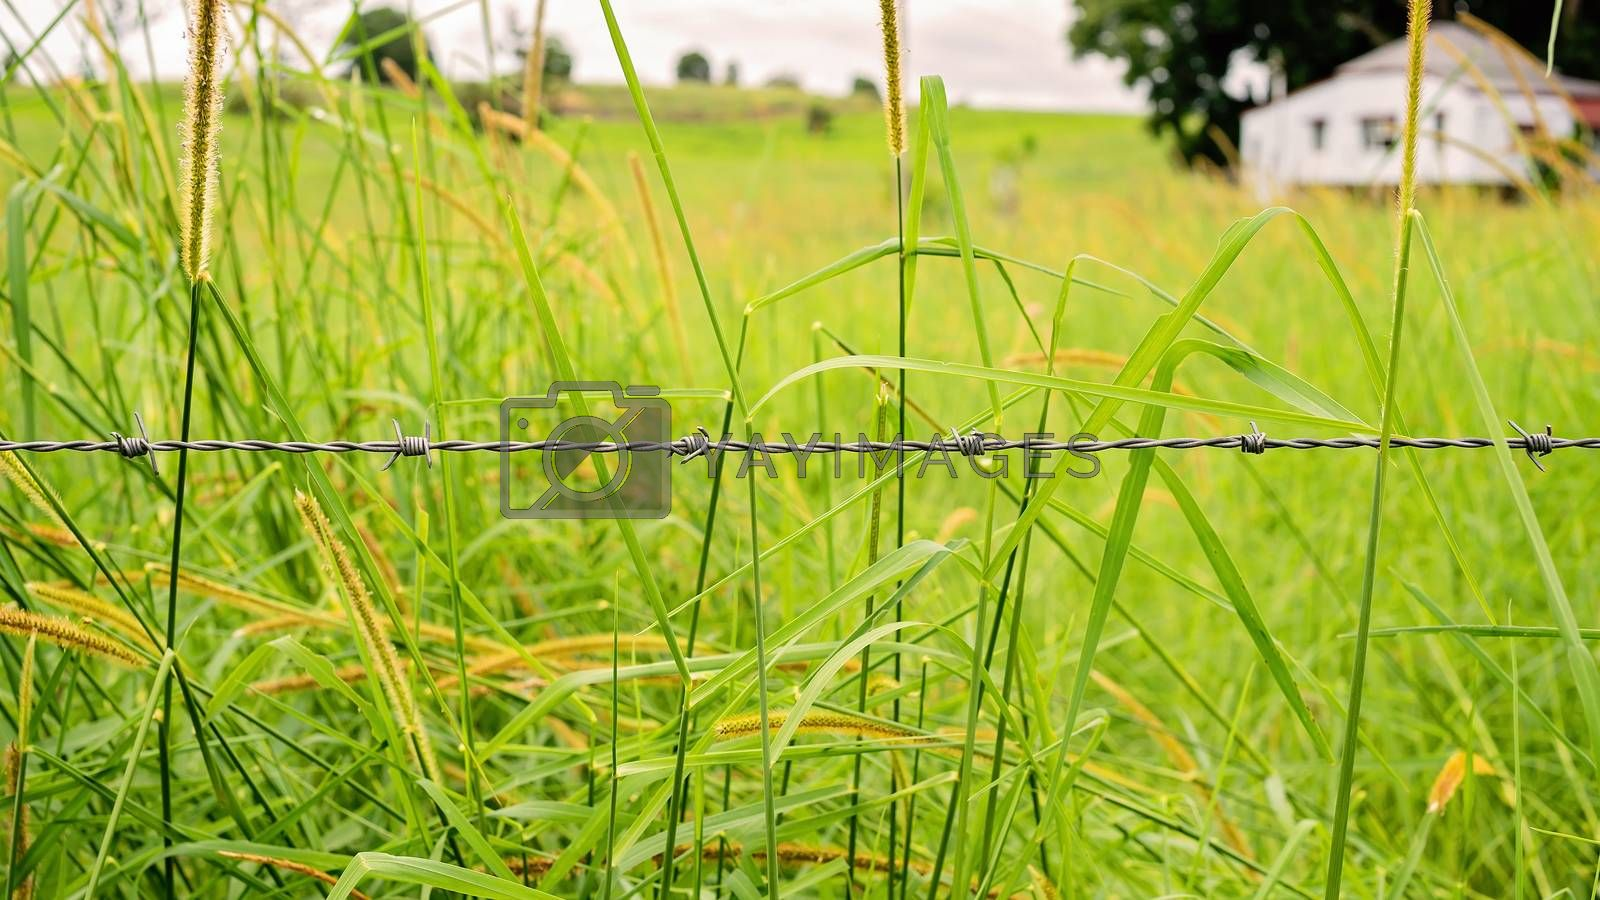 Barbed wire forming a fence across a field of lush wild green grass flourishing after rainfall, with an old home in the background